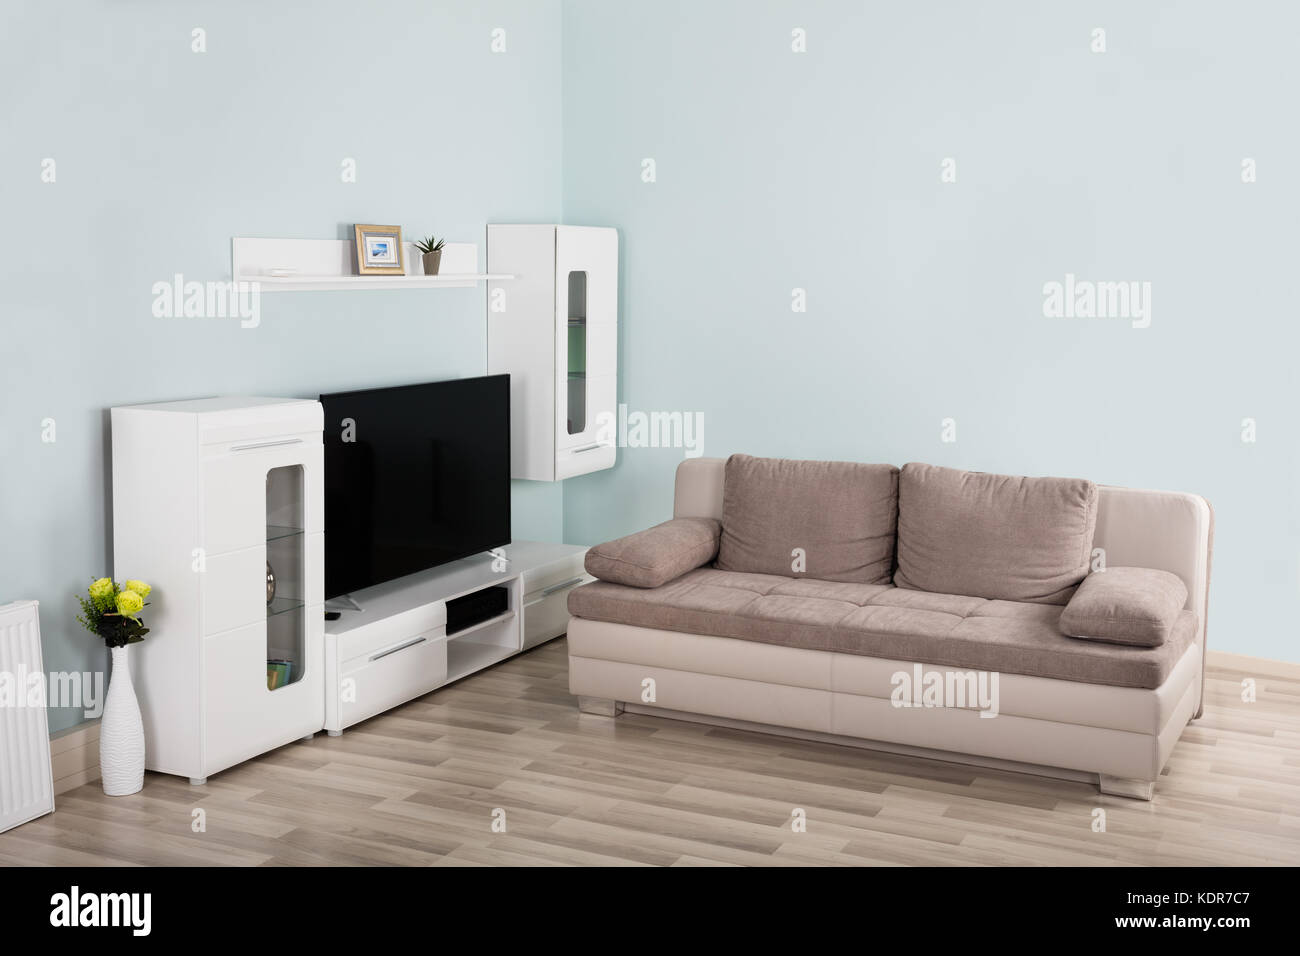 Interior Of Modern Empty Living Room With Sofa And Television In House